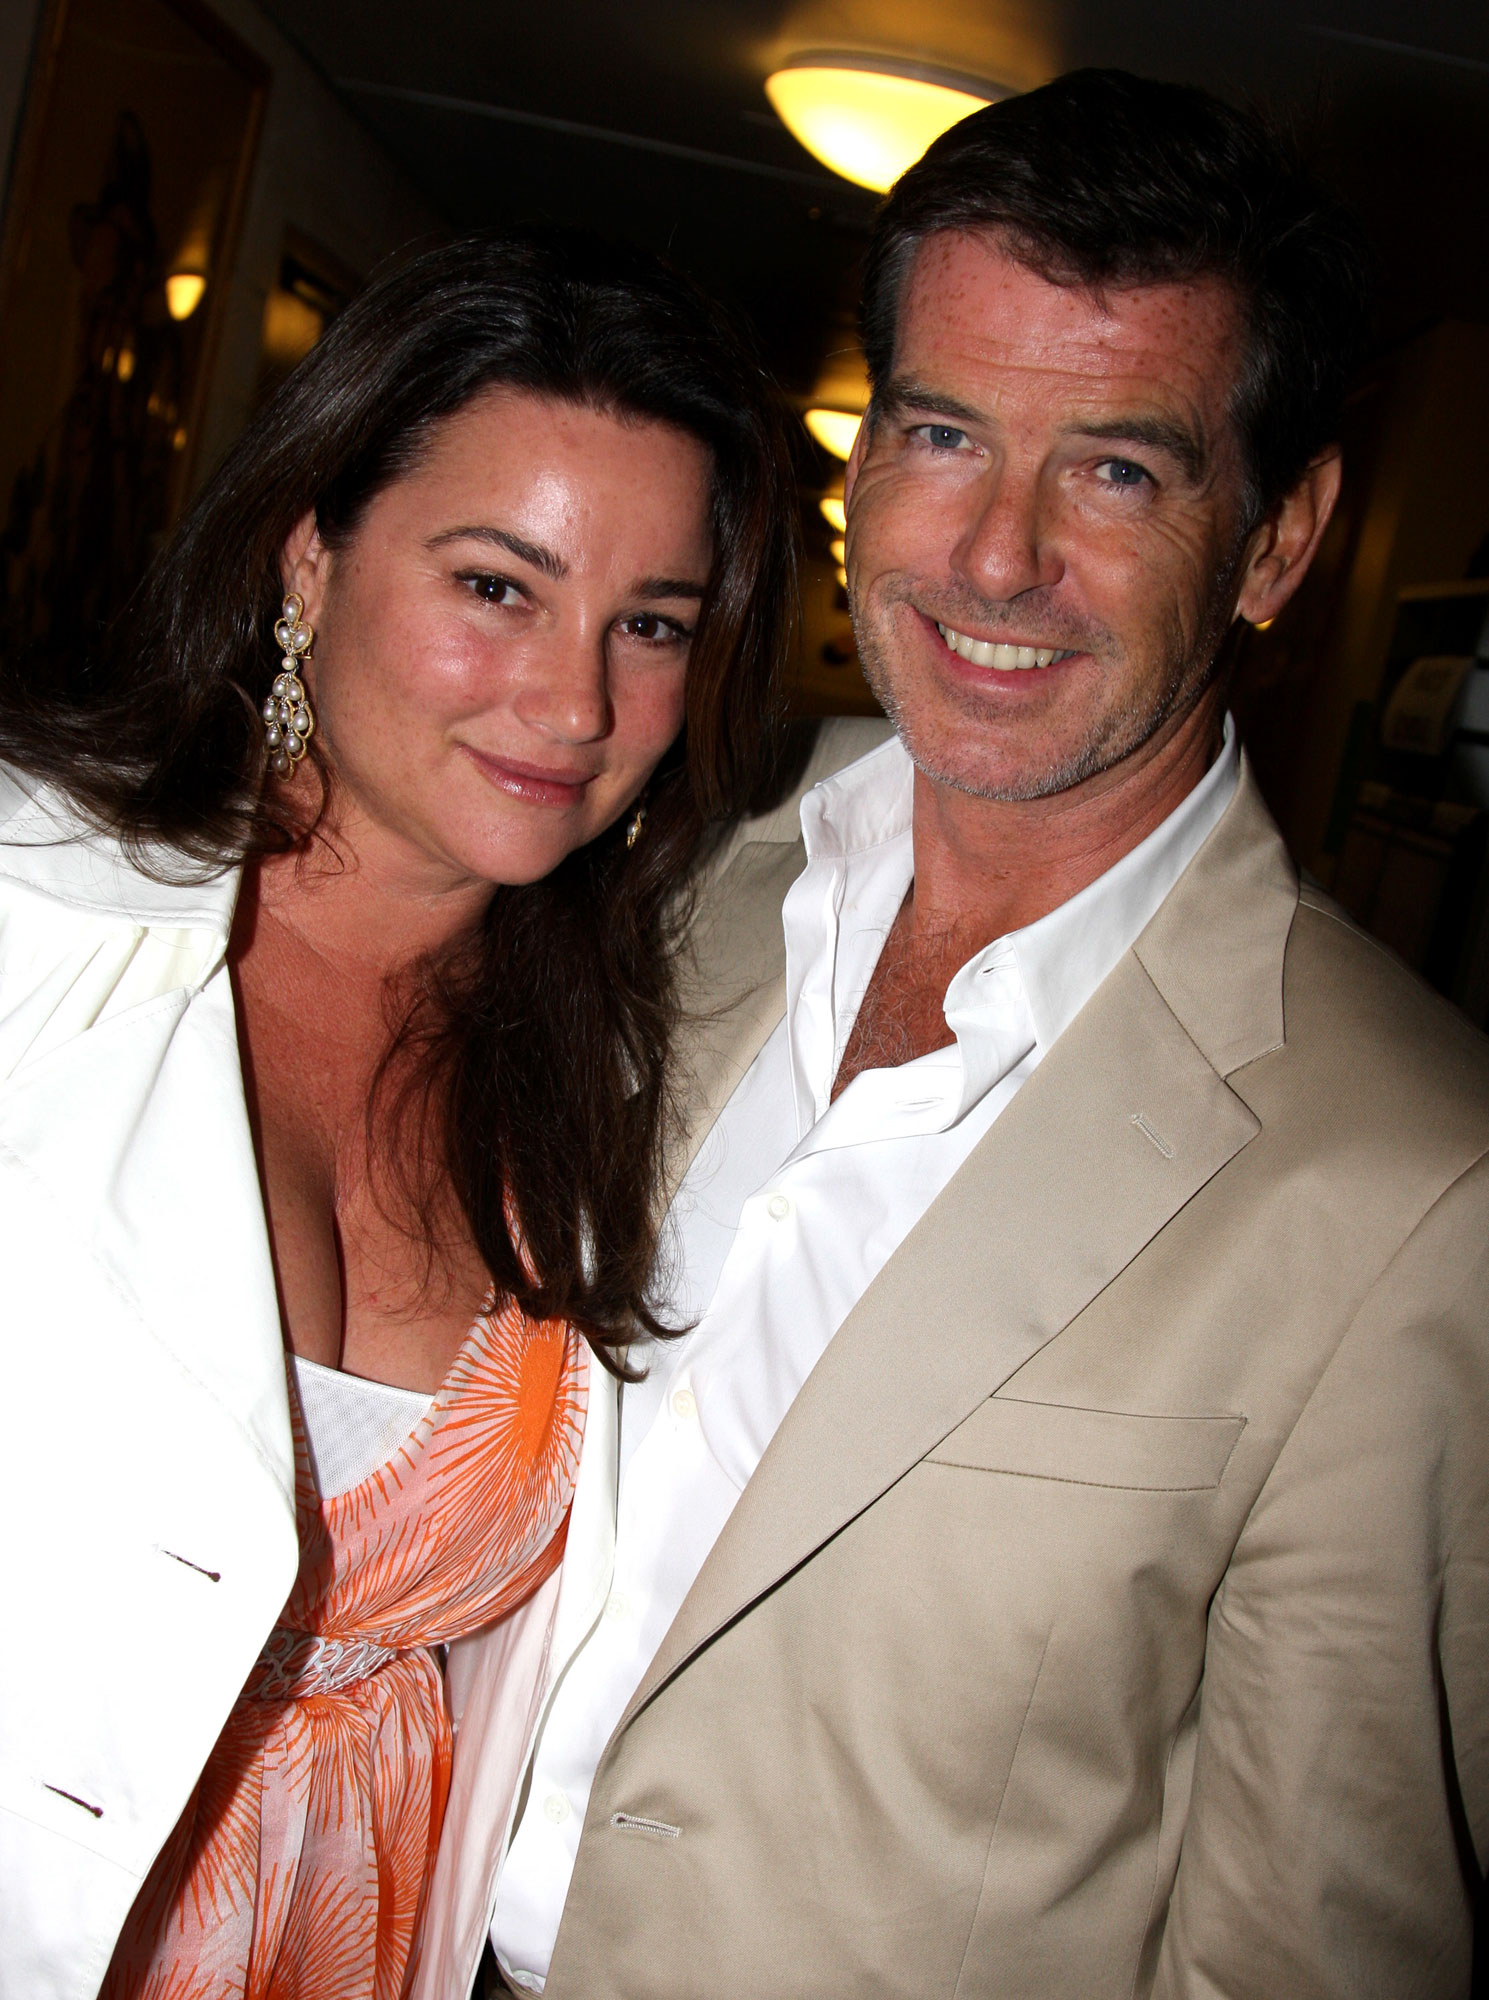 """Pierce Brosnan Visits """"South Pacific"""" on Broadway - July 11, 2008"""